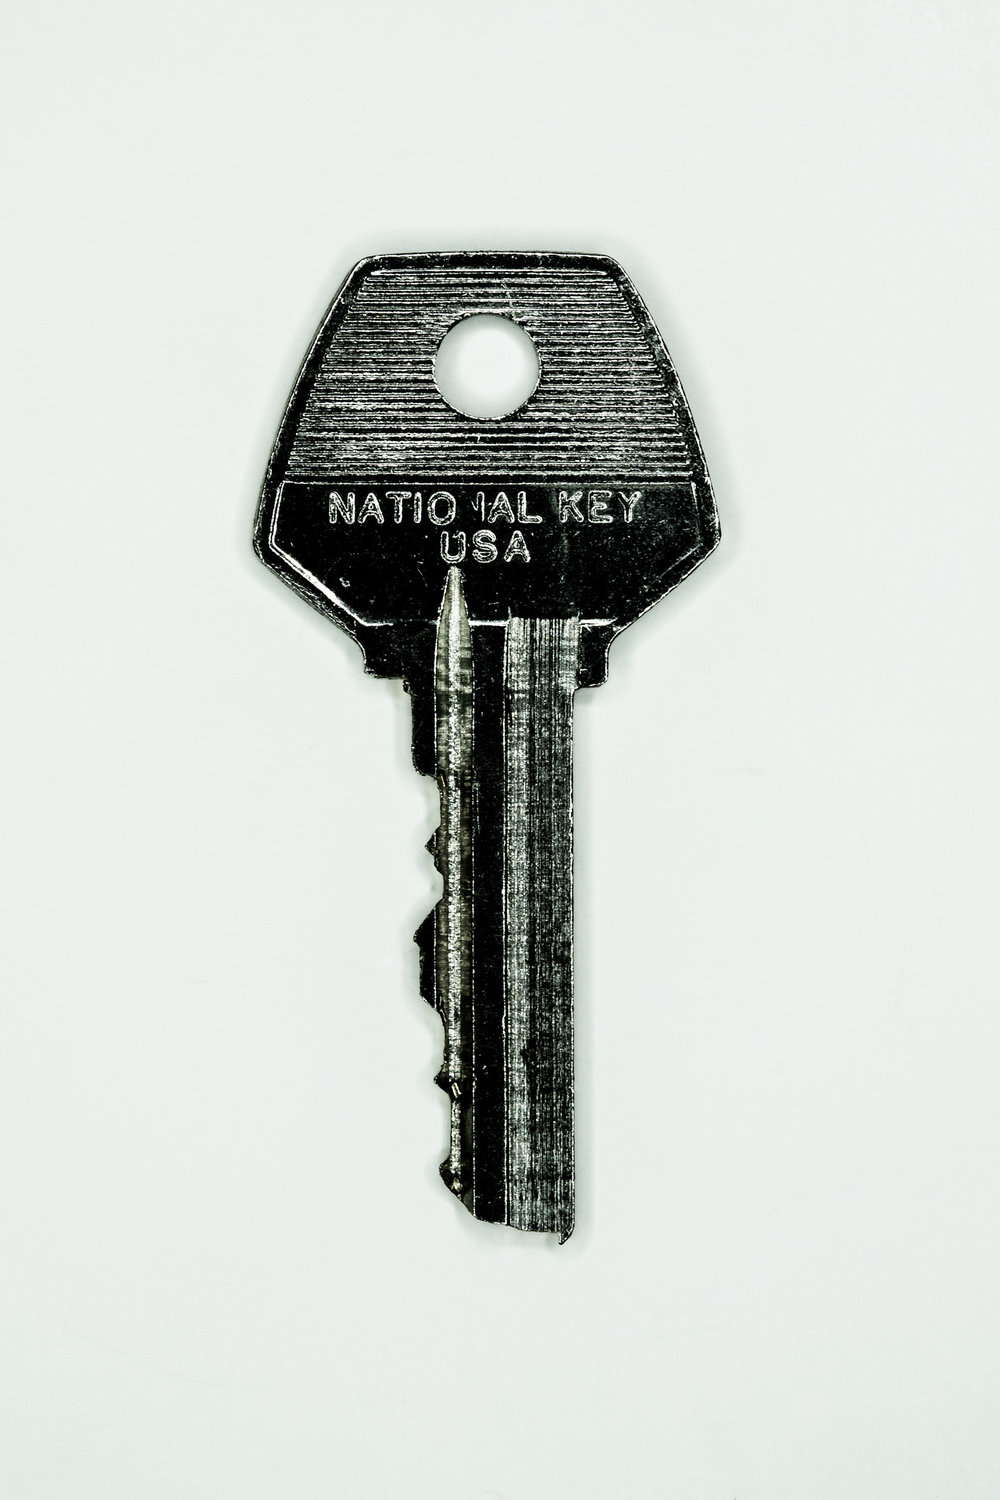 NATIONAL_KEY.jpg